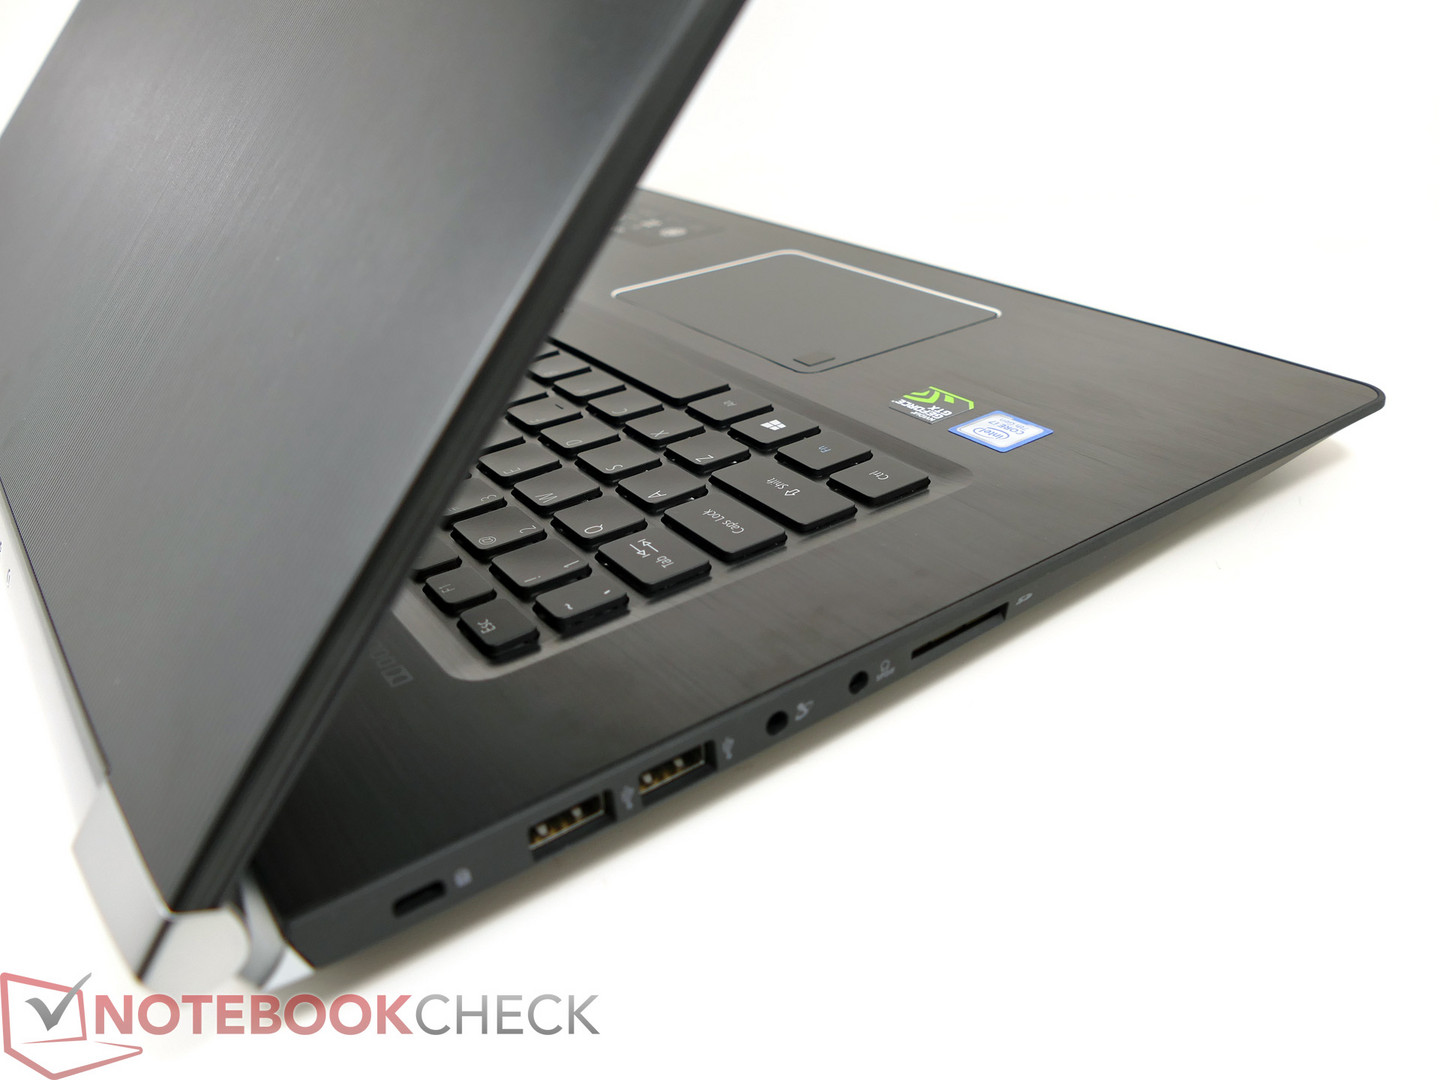 Acer Aspire V17 Nitro BE VN7-793G Notebook (GTX 1060 Black Edition) Review 600 06